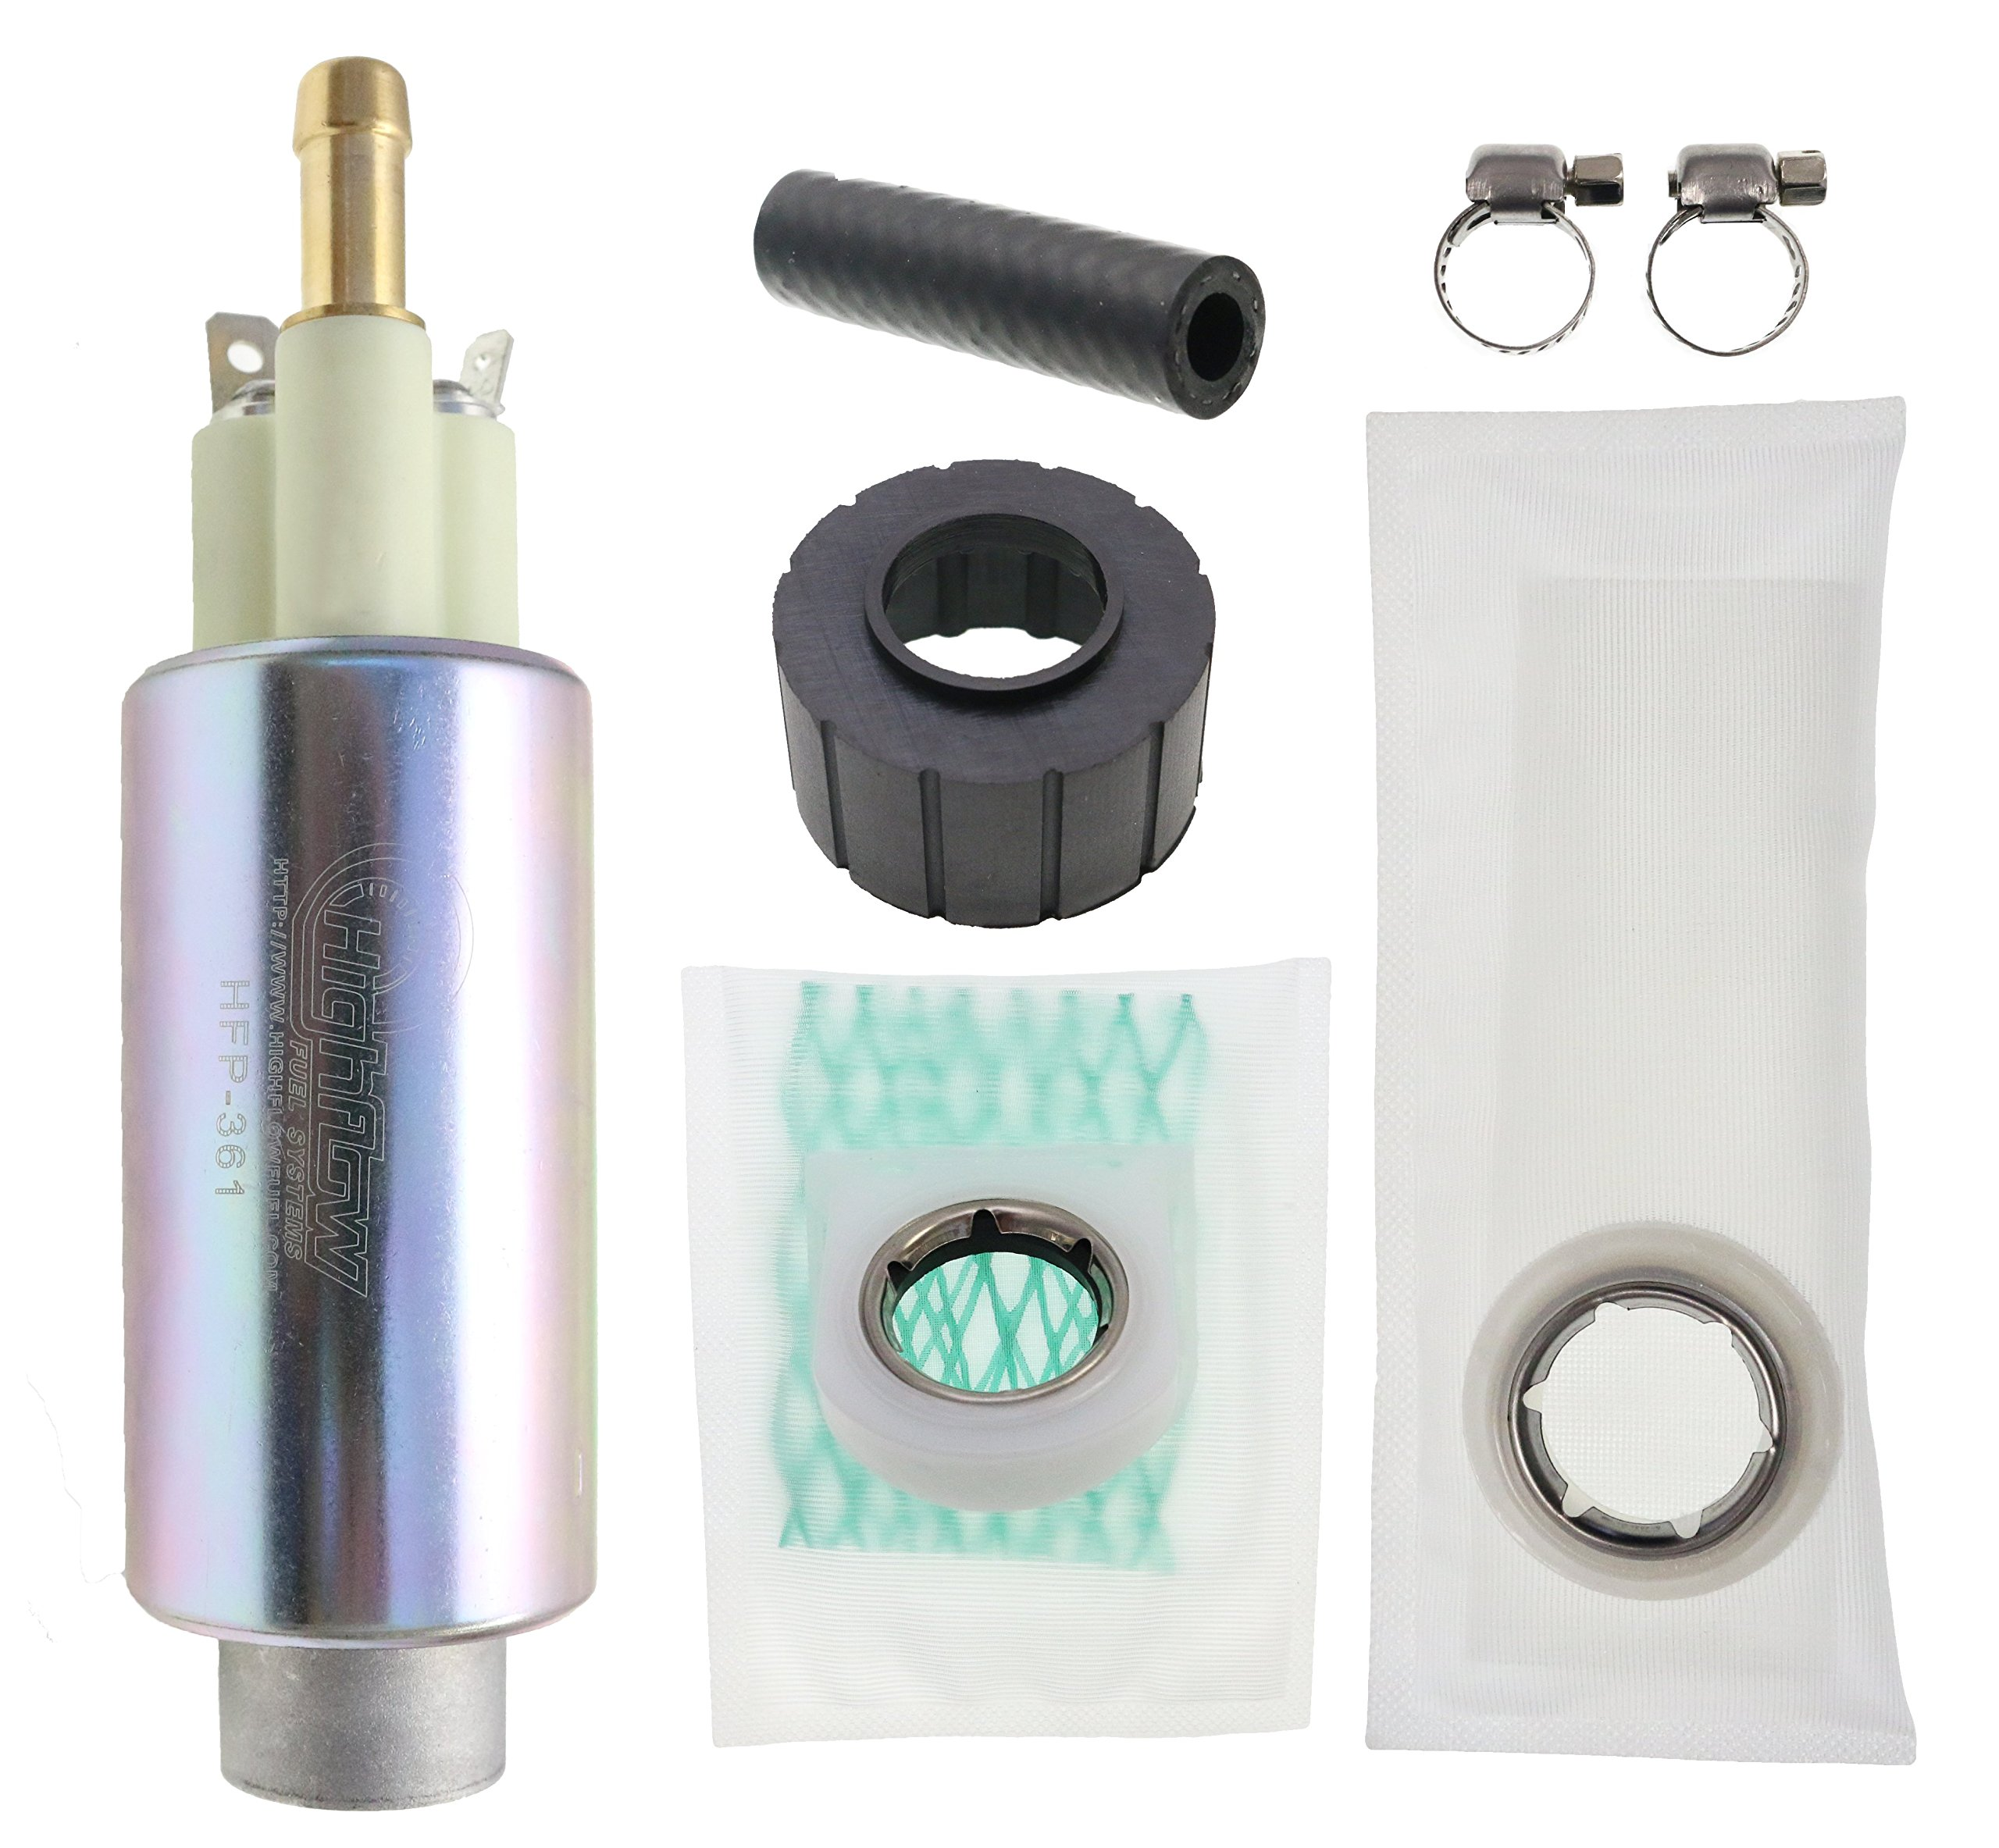 HFP-361 Intank Replacement Fuel Pump Kit with Strainer